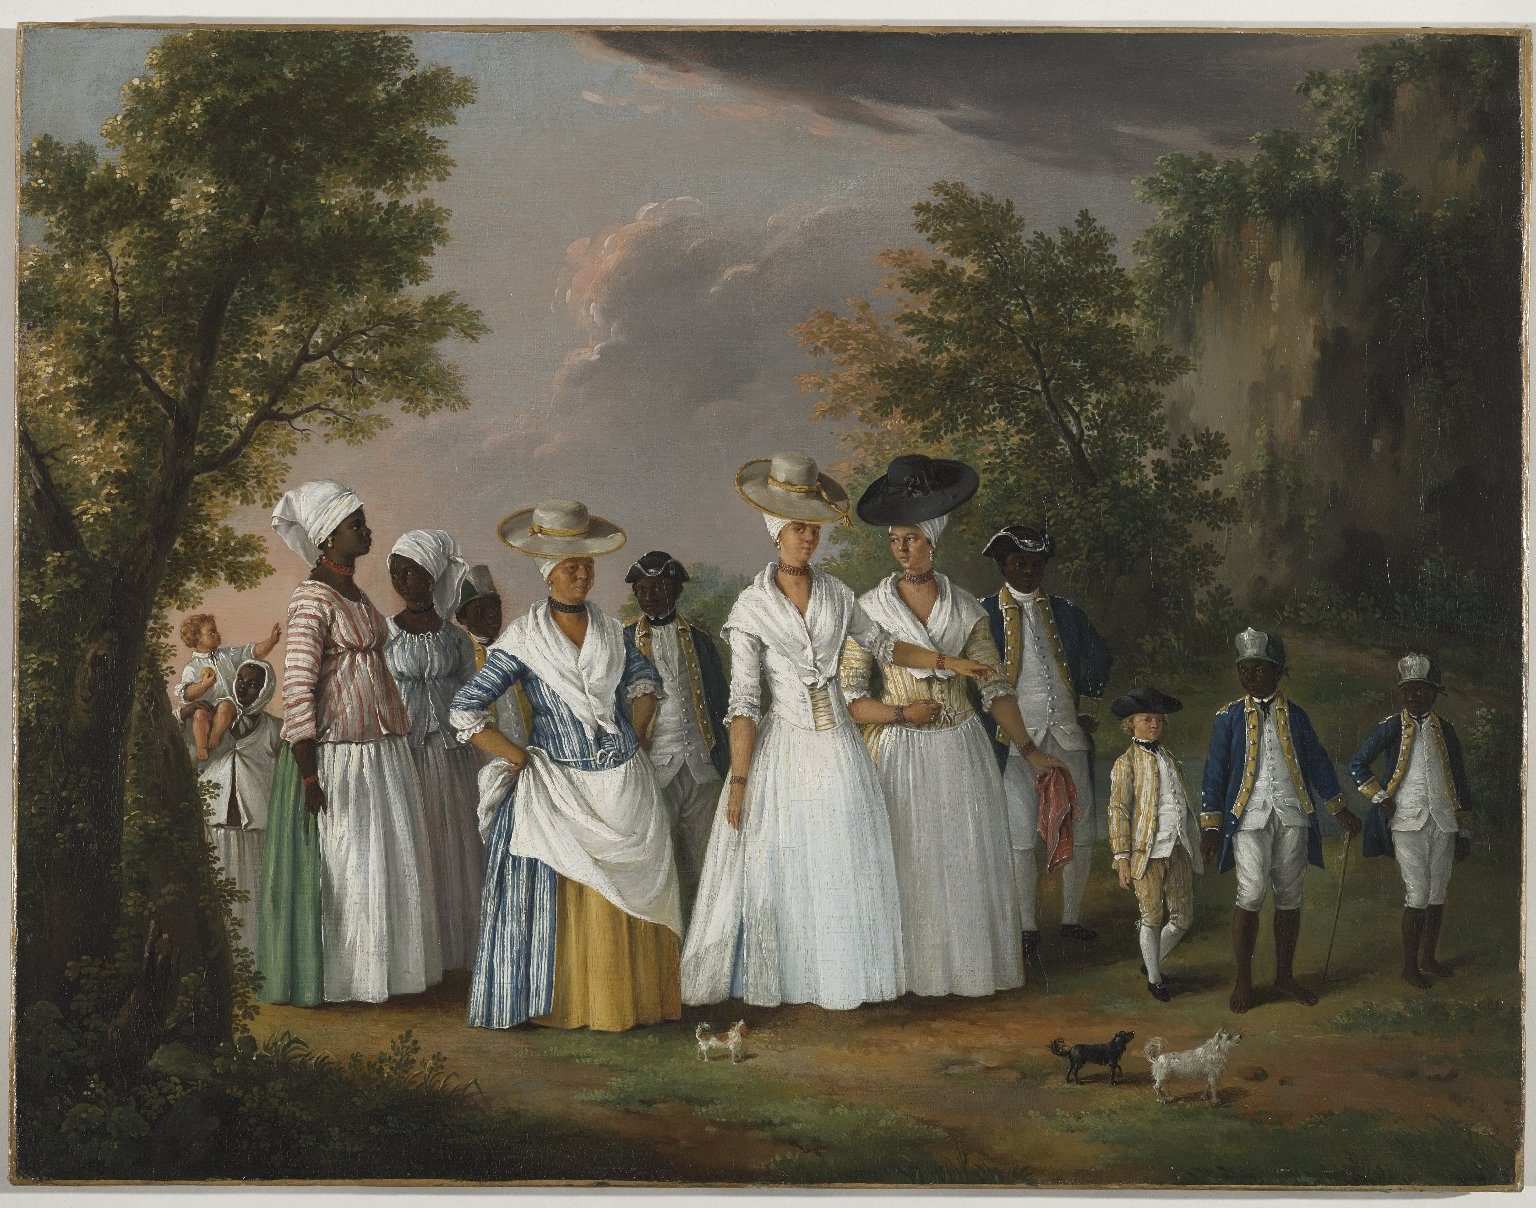 """Agostino Brunias, """"Free Women of Color with Their Children and Servants in a Landscape"""", ca. 1770-1794, Brooklyn Museum of Art, Gift of Mrs. Carll H. de Silver, in memory of her husband, by exchange gift of George S. Hellman, by exchange. Digital photo courtesy of Brooklyn Museum.         Normal   0             false   false   false     EN-US   X-NONE   X-NONE                                                                                                                                                                                                                                                                                                                                                                                                                                                                                                                                                                                                                                                                                                                                                                                                                                                               /* Style Definitions */  table.MsoNormalTable {mso-style-name:""""Table Normal""""; mso-tstyle-rowband-size:0; mso-tstyle-colband-size:0; mso-style-noshow:yes; mso-style-priority:99; mso-style-parent:""""""""; mso-padding-alt:0in 5.4pt 0in 5.4pt; mso-para-margin-top:0in; mso-para-margin-right:0in; mso-para-margin-bottom:8.0pt; mso-para-margin-left:0in; line-height:107%; mso-pagination:widow-orphan; font-size:11.0pt; font-family:""""Calibri"""",sans-serif; mso-ascii-font-family:Calibri; mso-ascii-theme-font:minor-latin; mso-hansi-font-family:Calibri; mso-hansi-theme-font:minor-latin;}"""